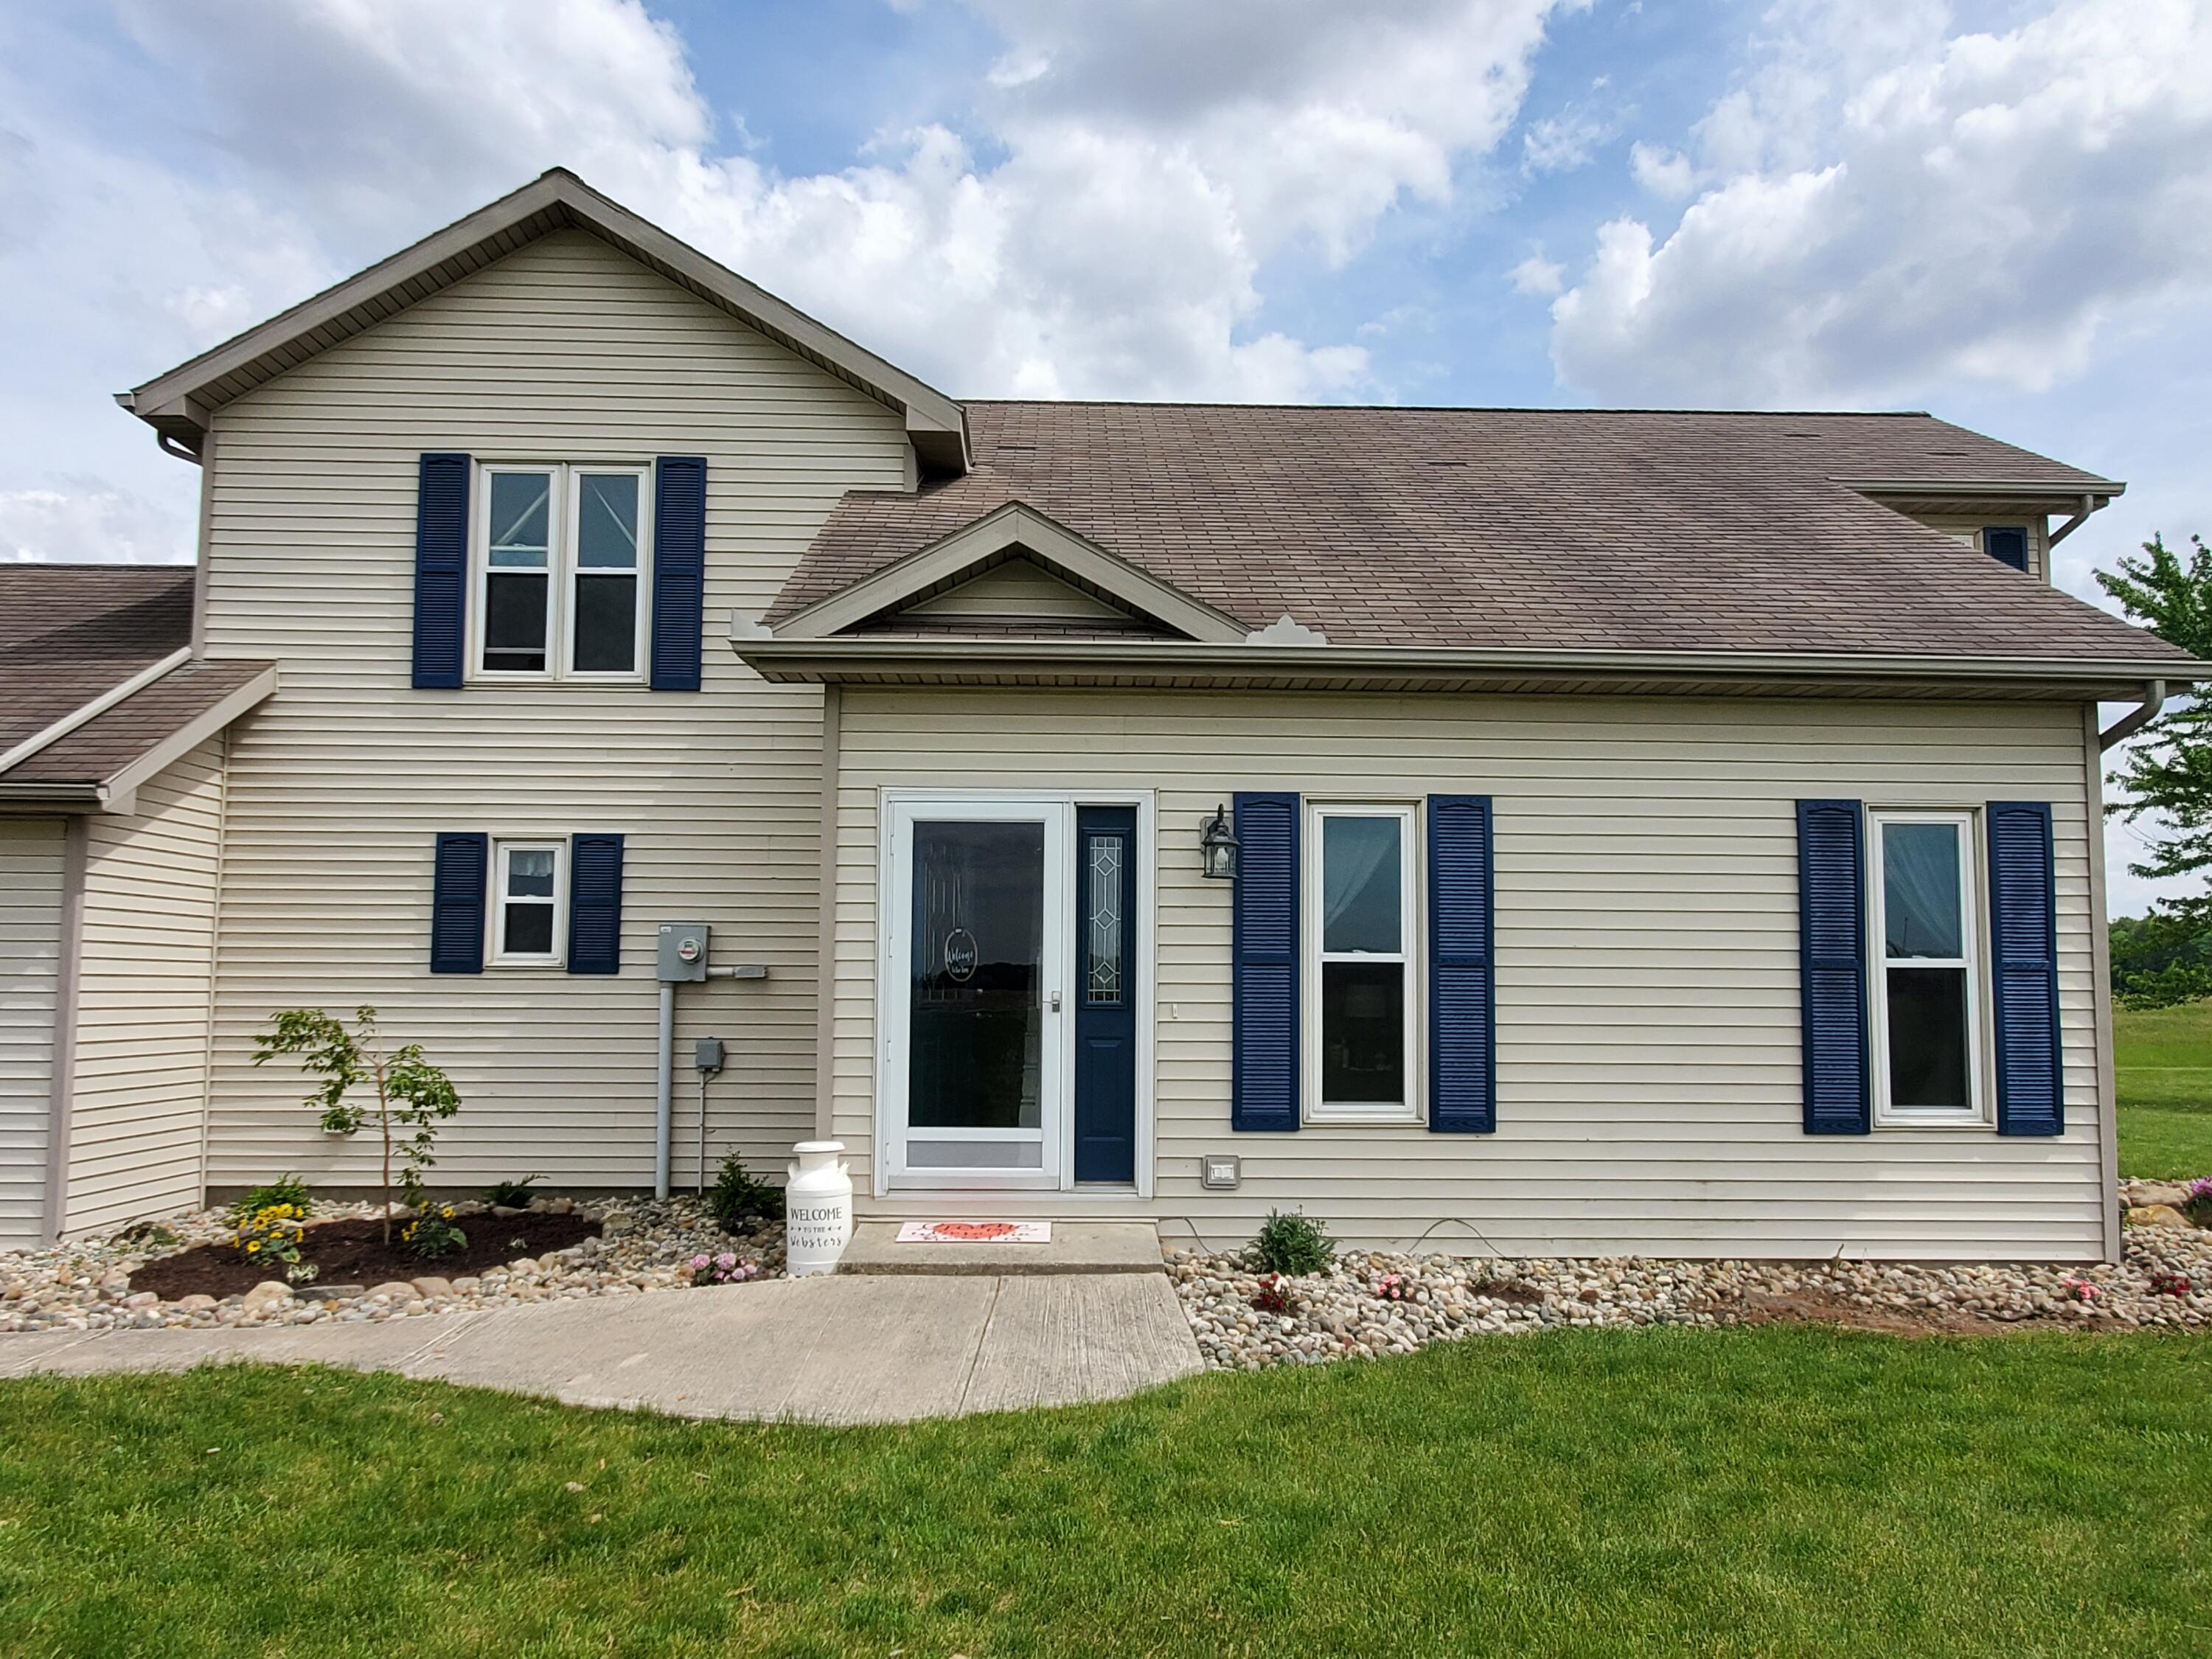 Photo 1 for 6378 Monmouth Rd Van Wert, OH 45891